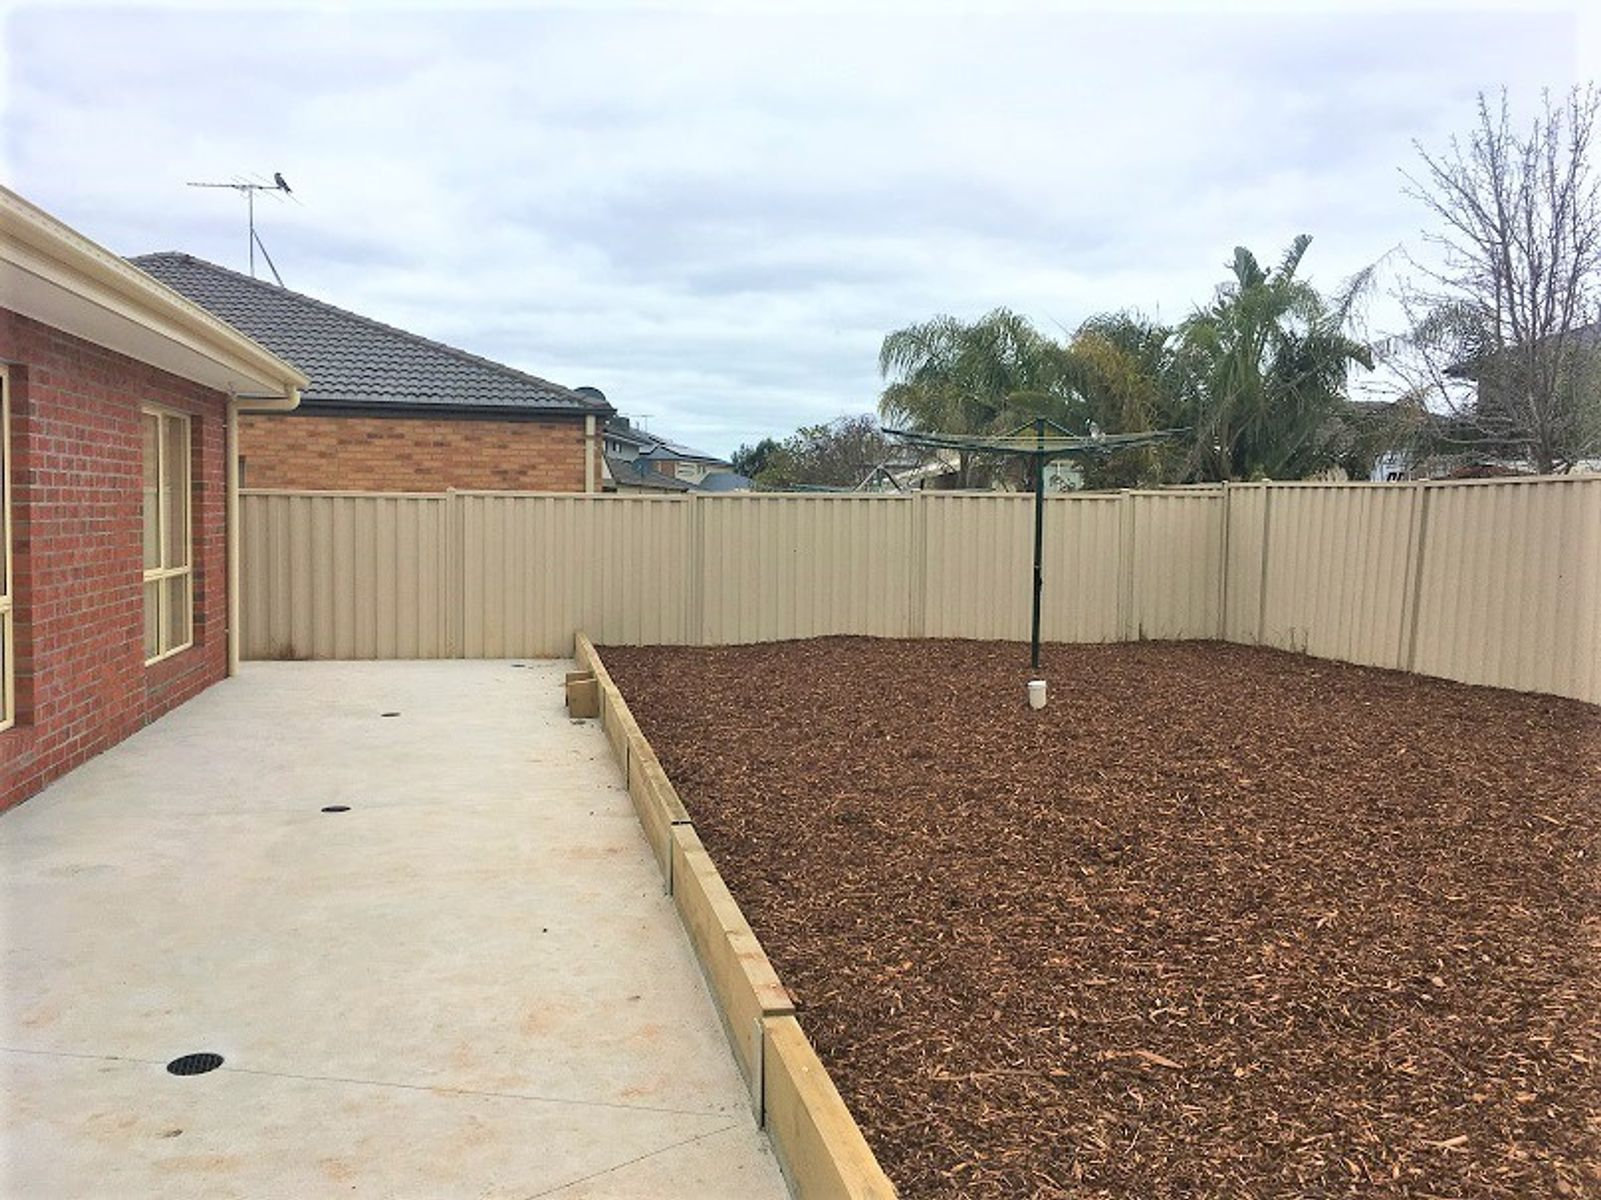 11/A Panorama Avenue, Melton West, VIC 3337